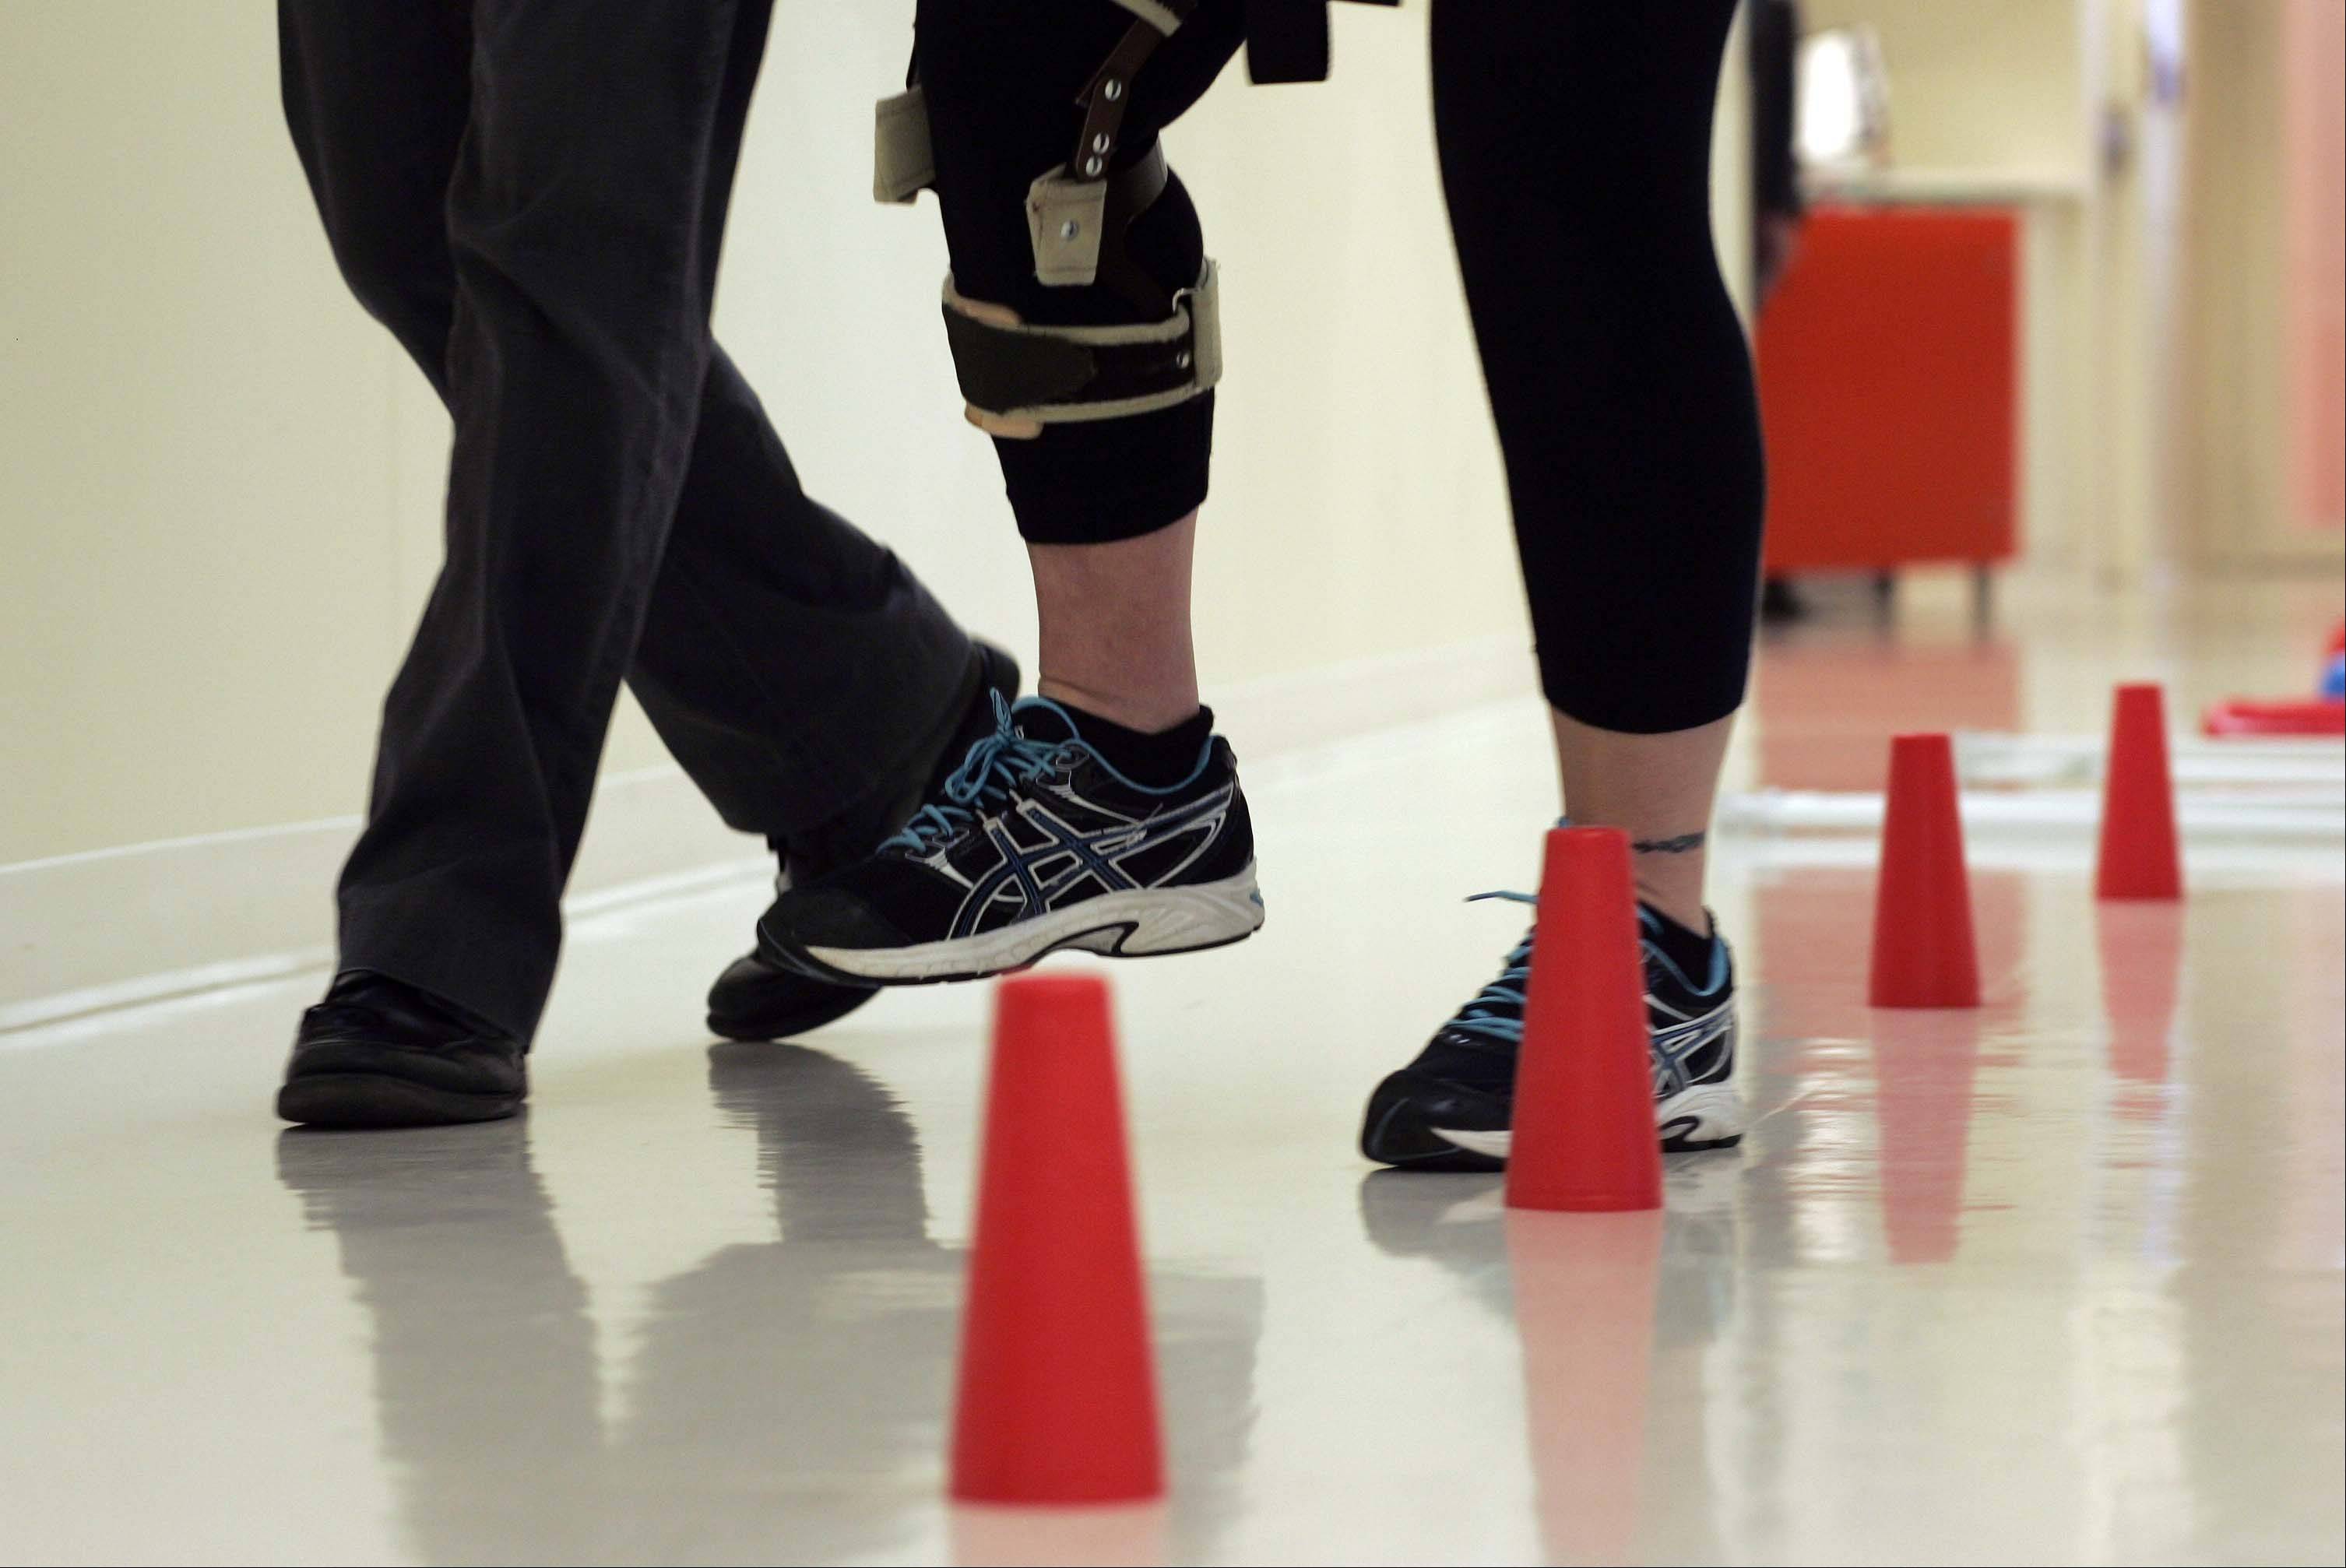 Kathy Pacholski moves her feet quickly and deliberately around cones while she works with Research Scientist and Physical Therapist T. George Hornby at The Rehabilitation Institute of Chicago. Senator Kirk would have done much of the same rehabilitation exercises that Pacholski has finished.